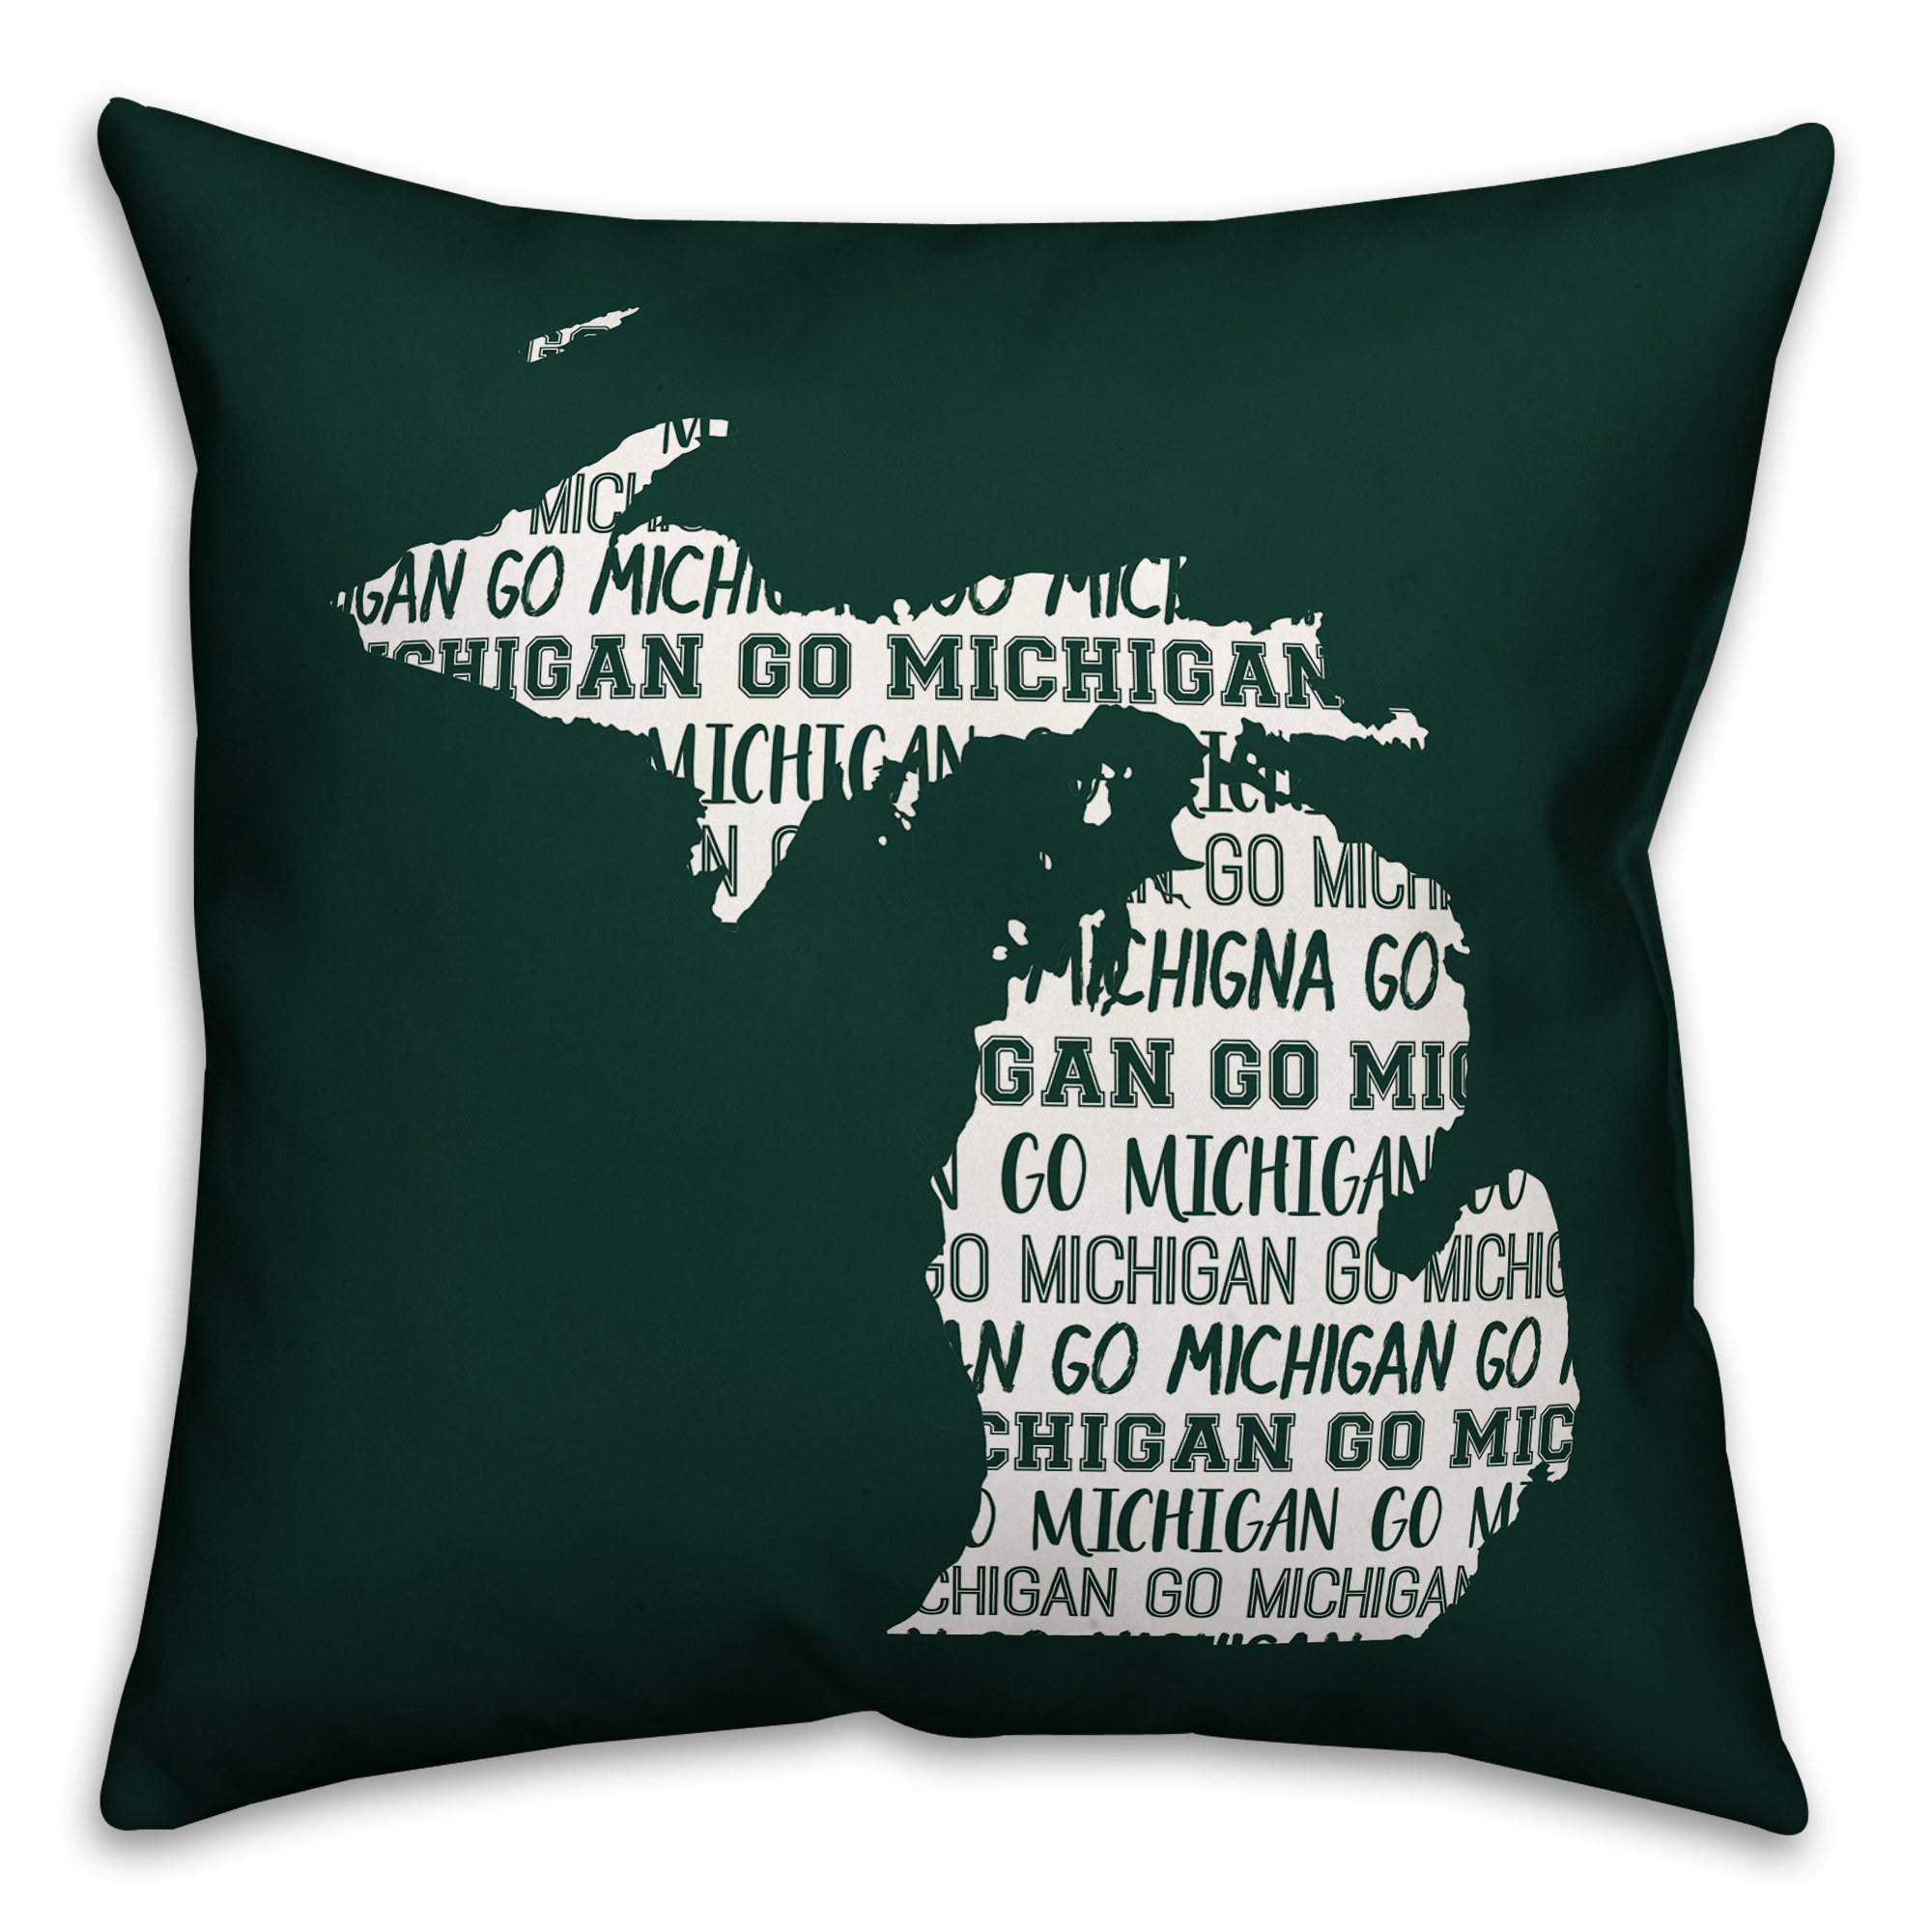 Green Michigan Go Team 16x16 Spun Poly Pillow